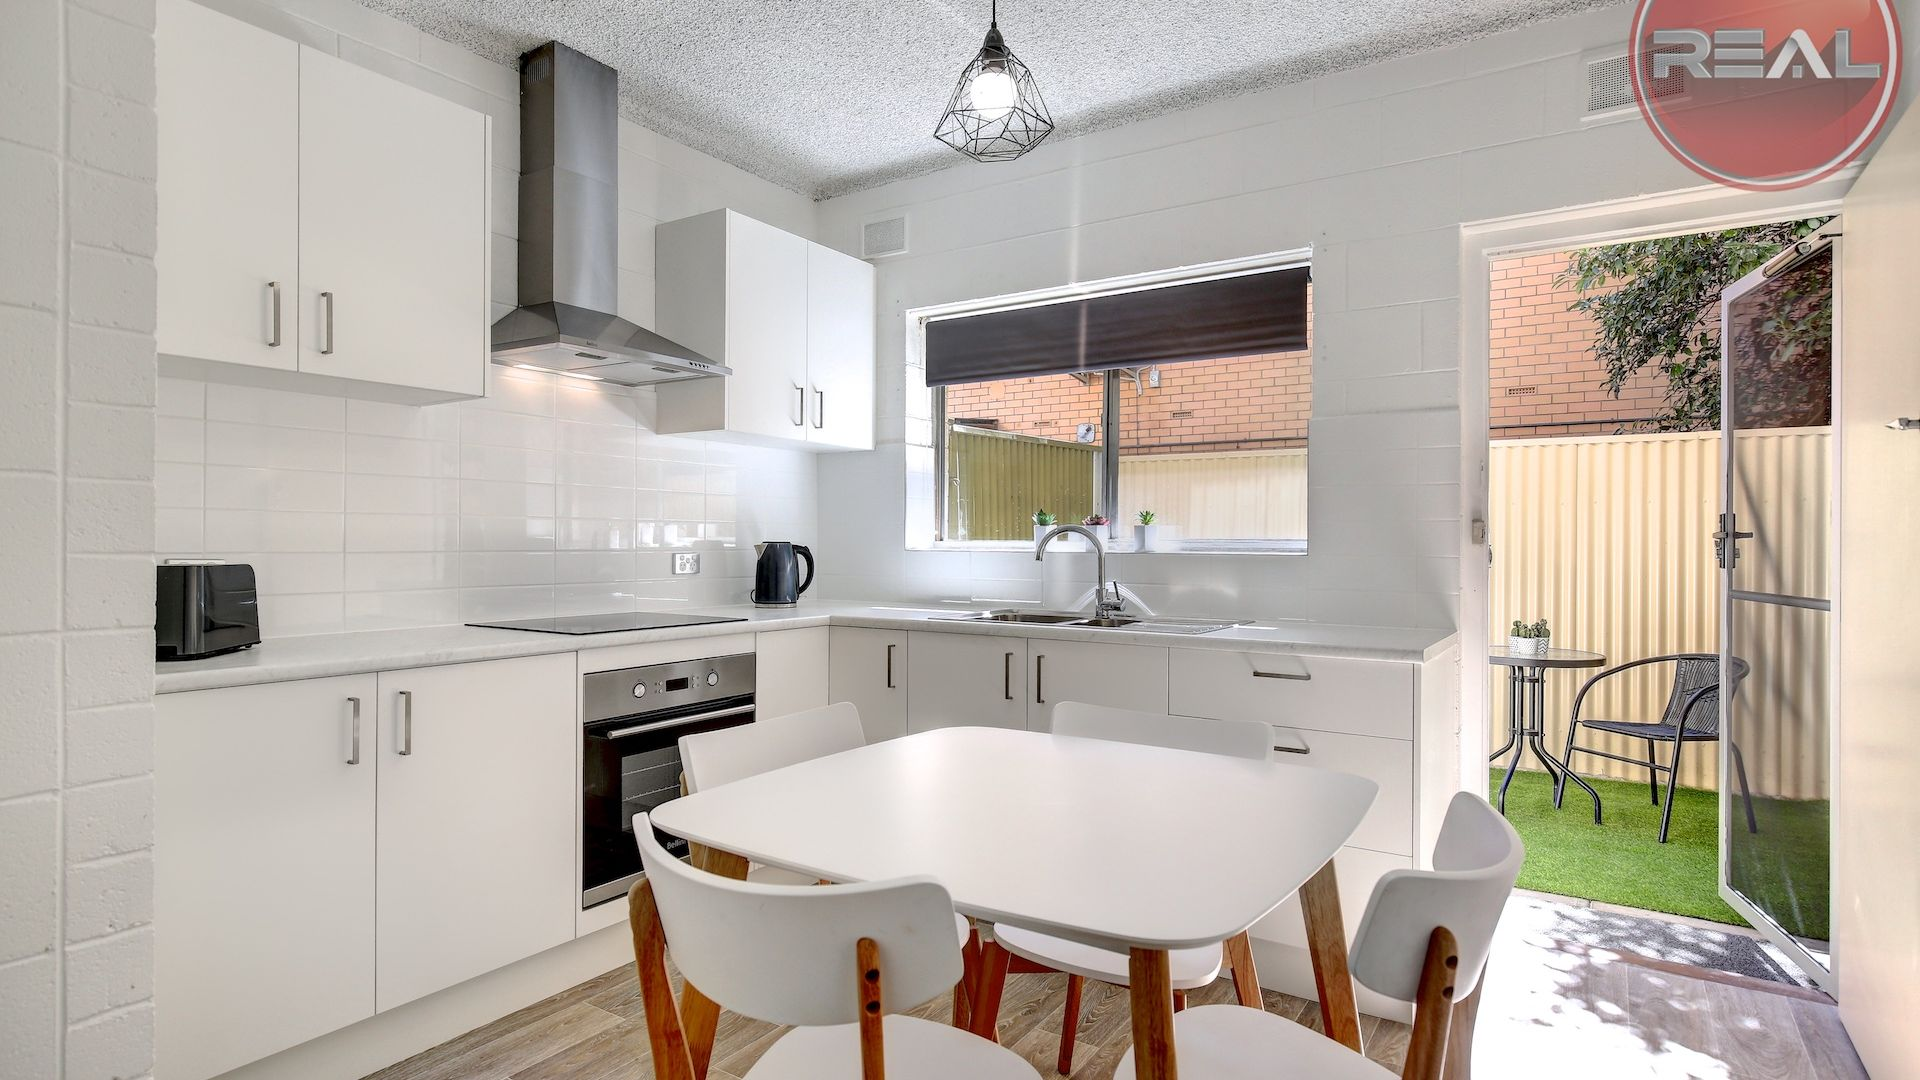 Unit 13, 67 Queen Street, Norwood SA 5067, Image 2